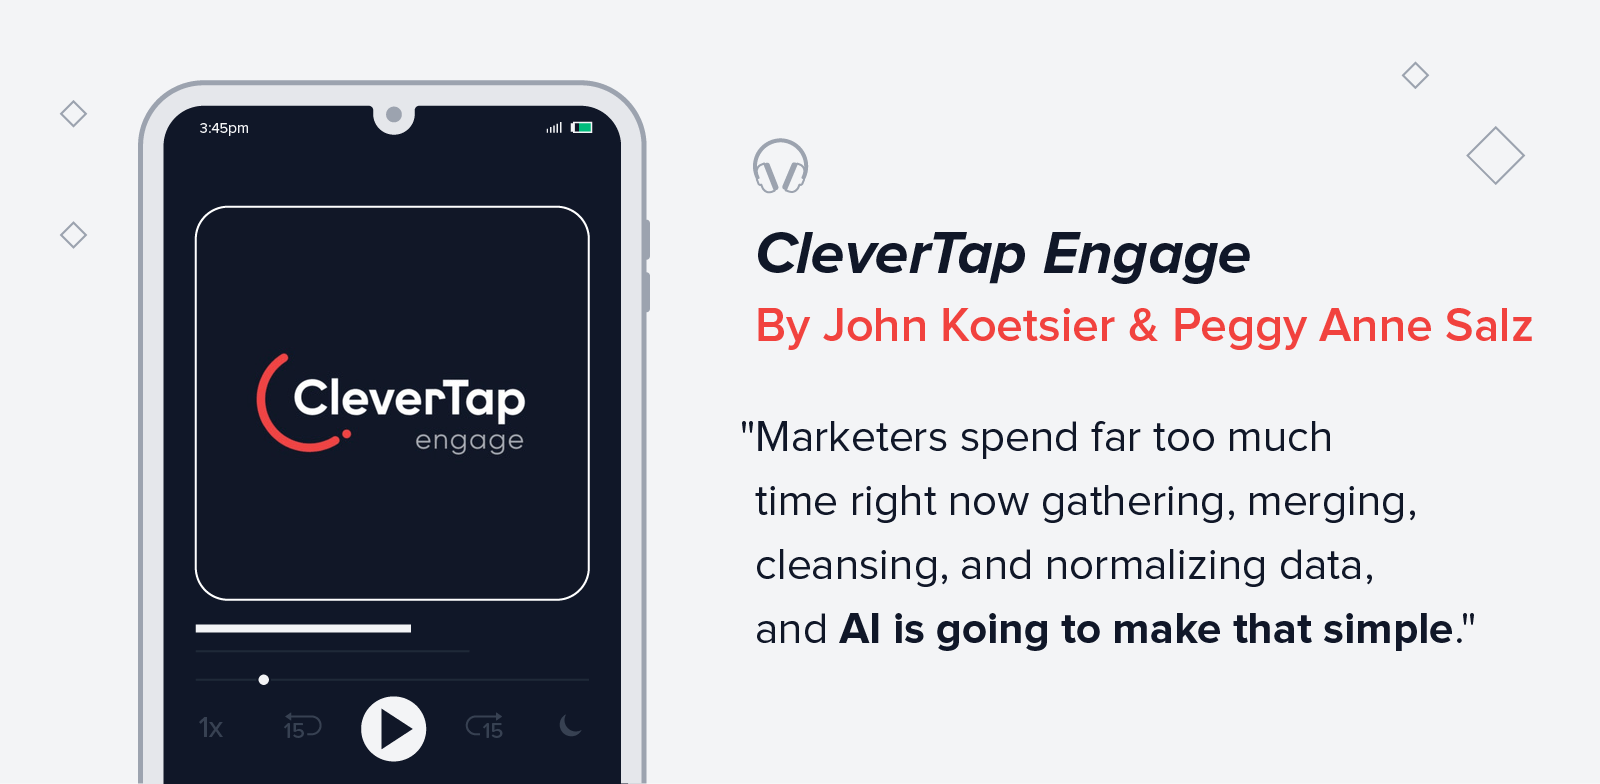 quote from Clevertap Engage